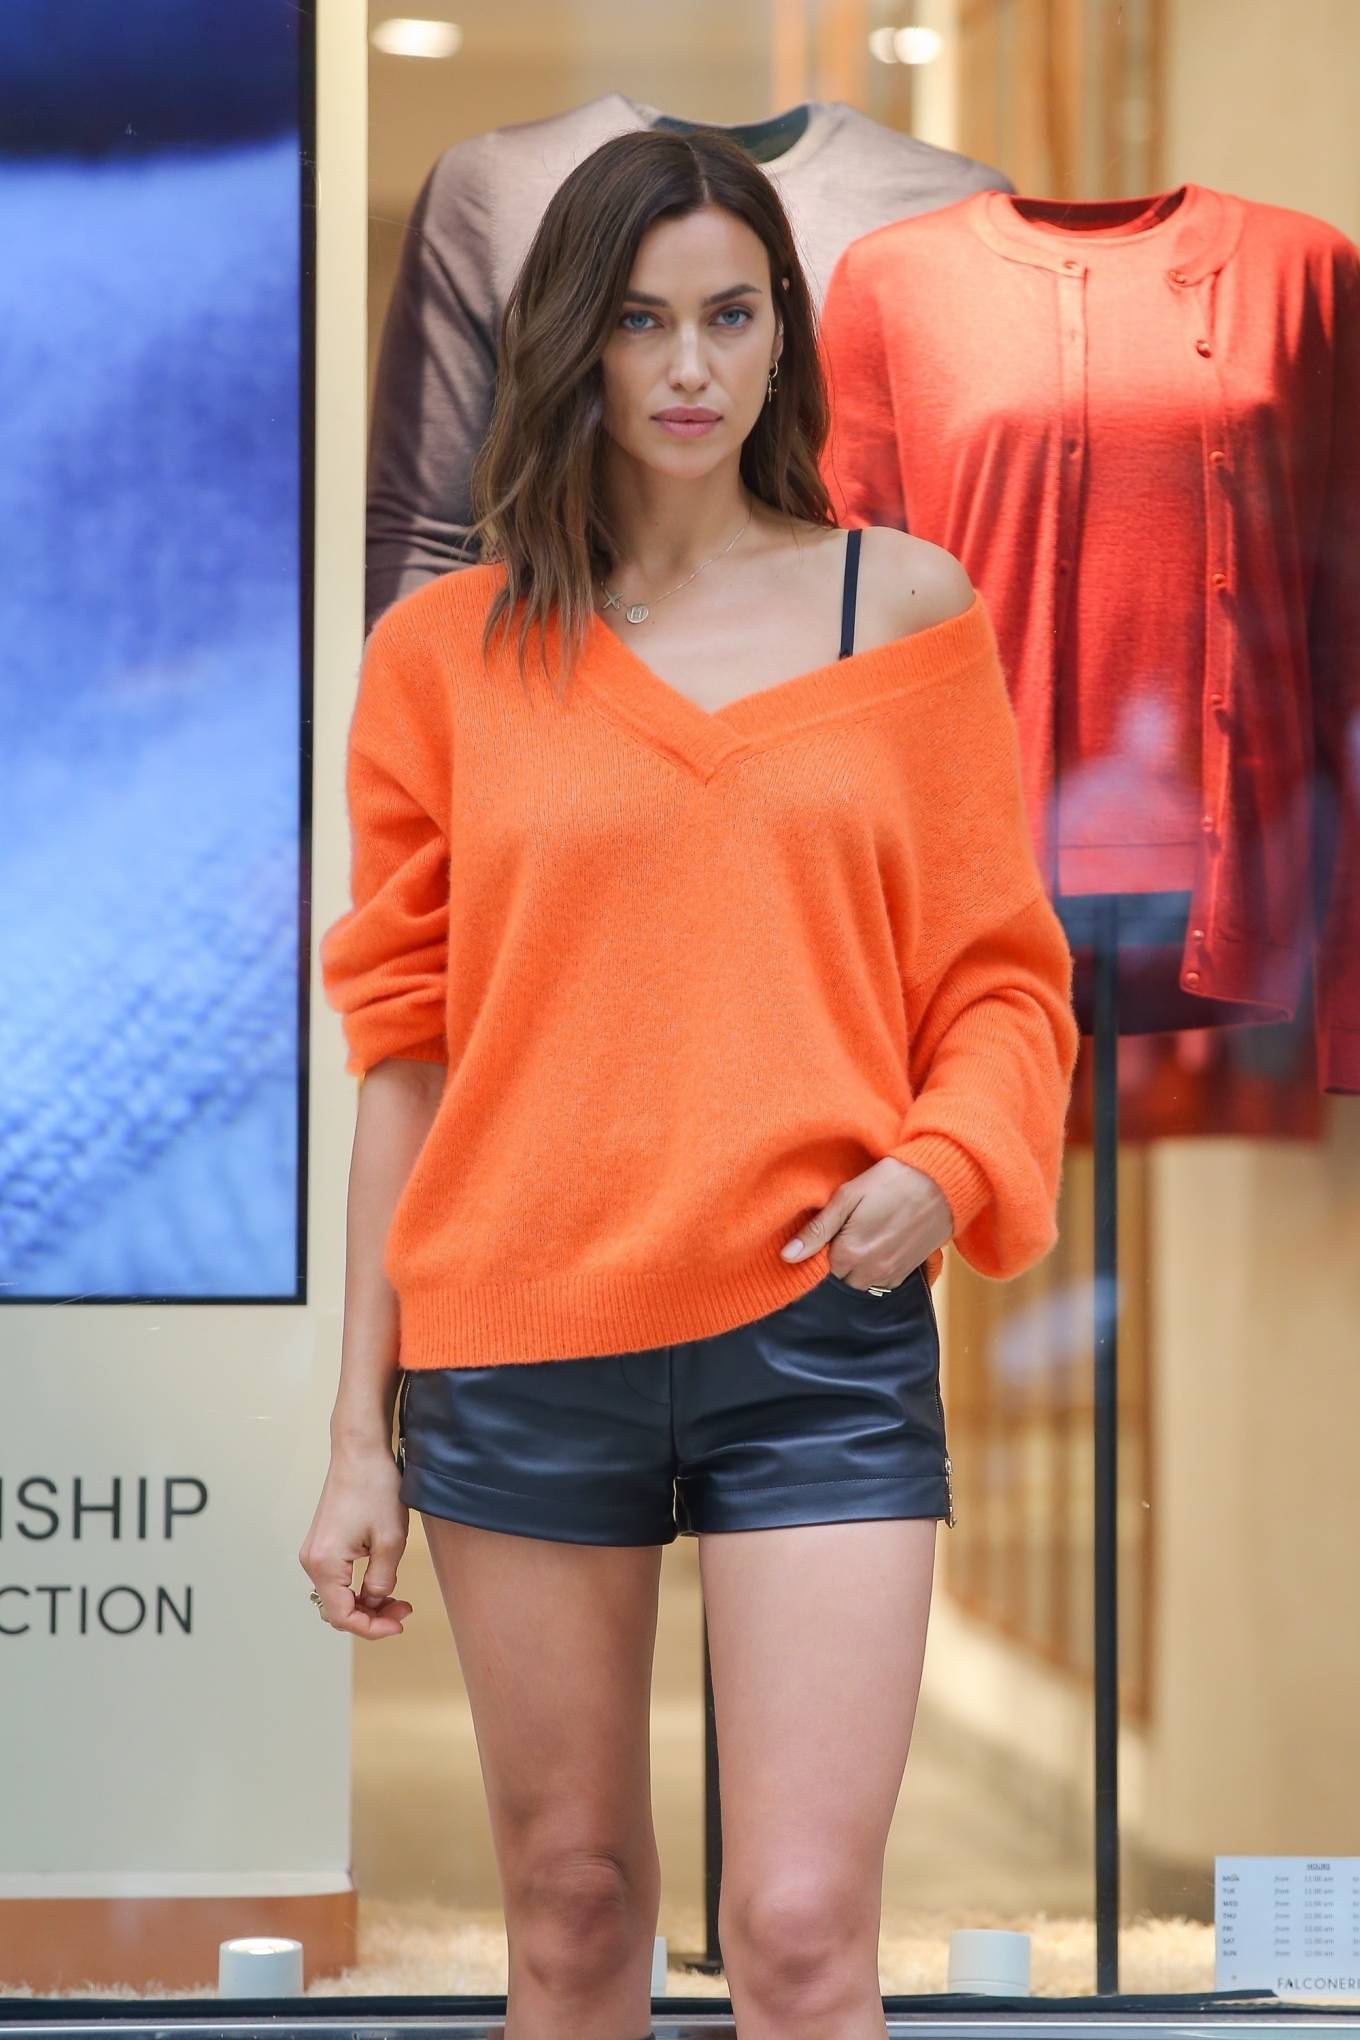 Irina Shayk - Look chic at the Falconeri boutique in NYC